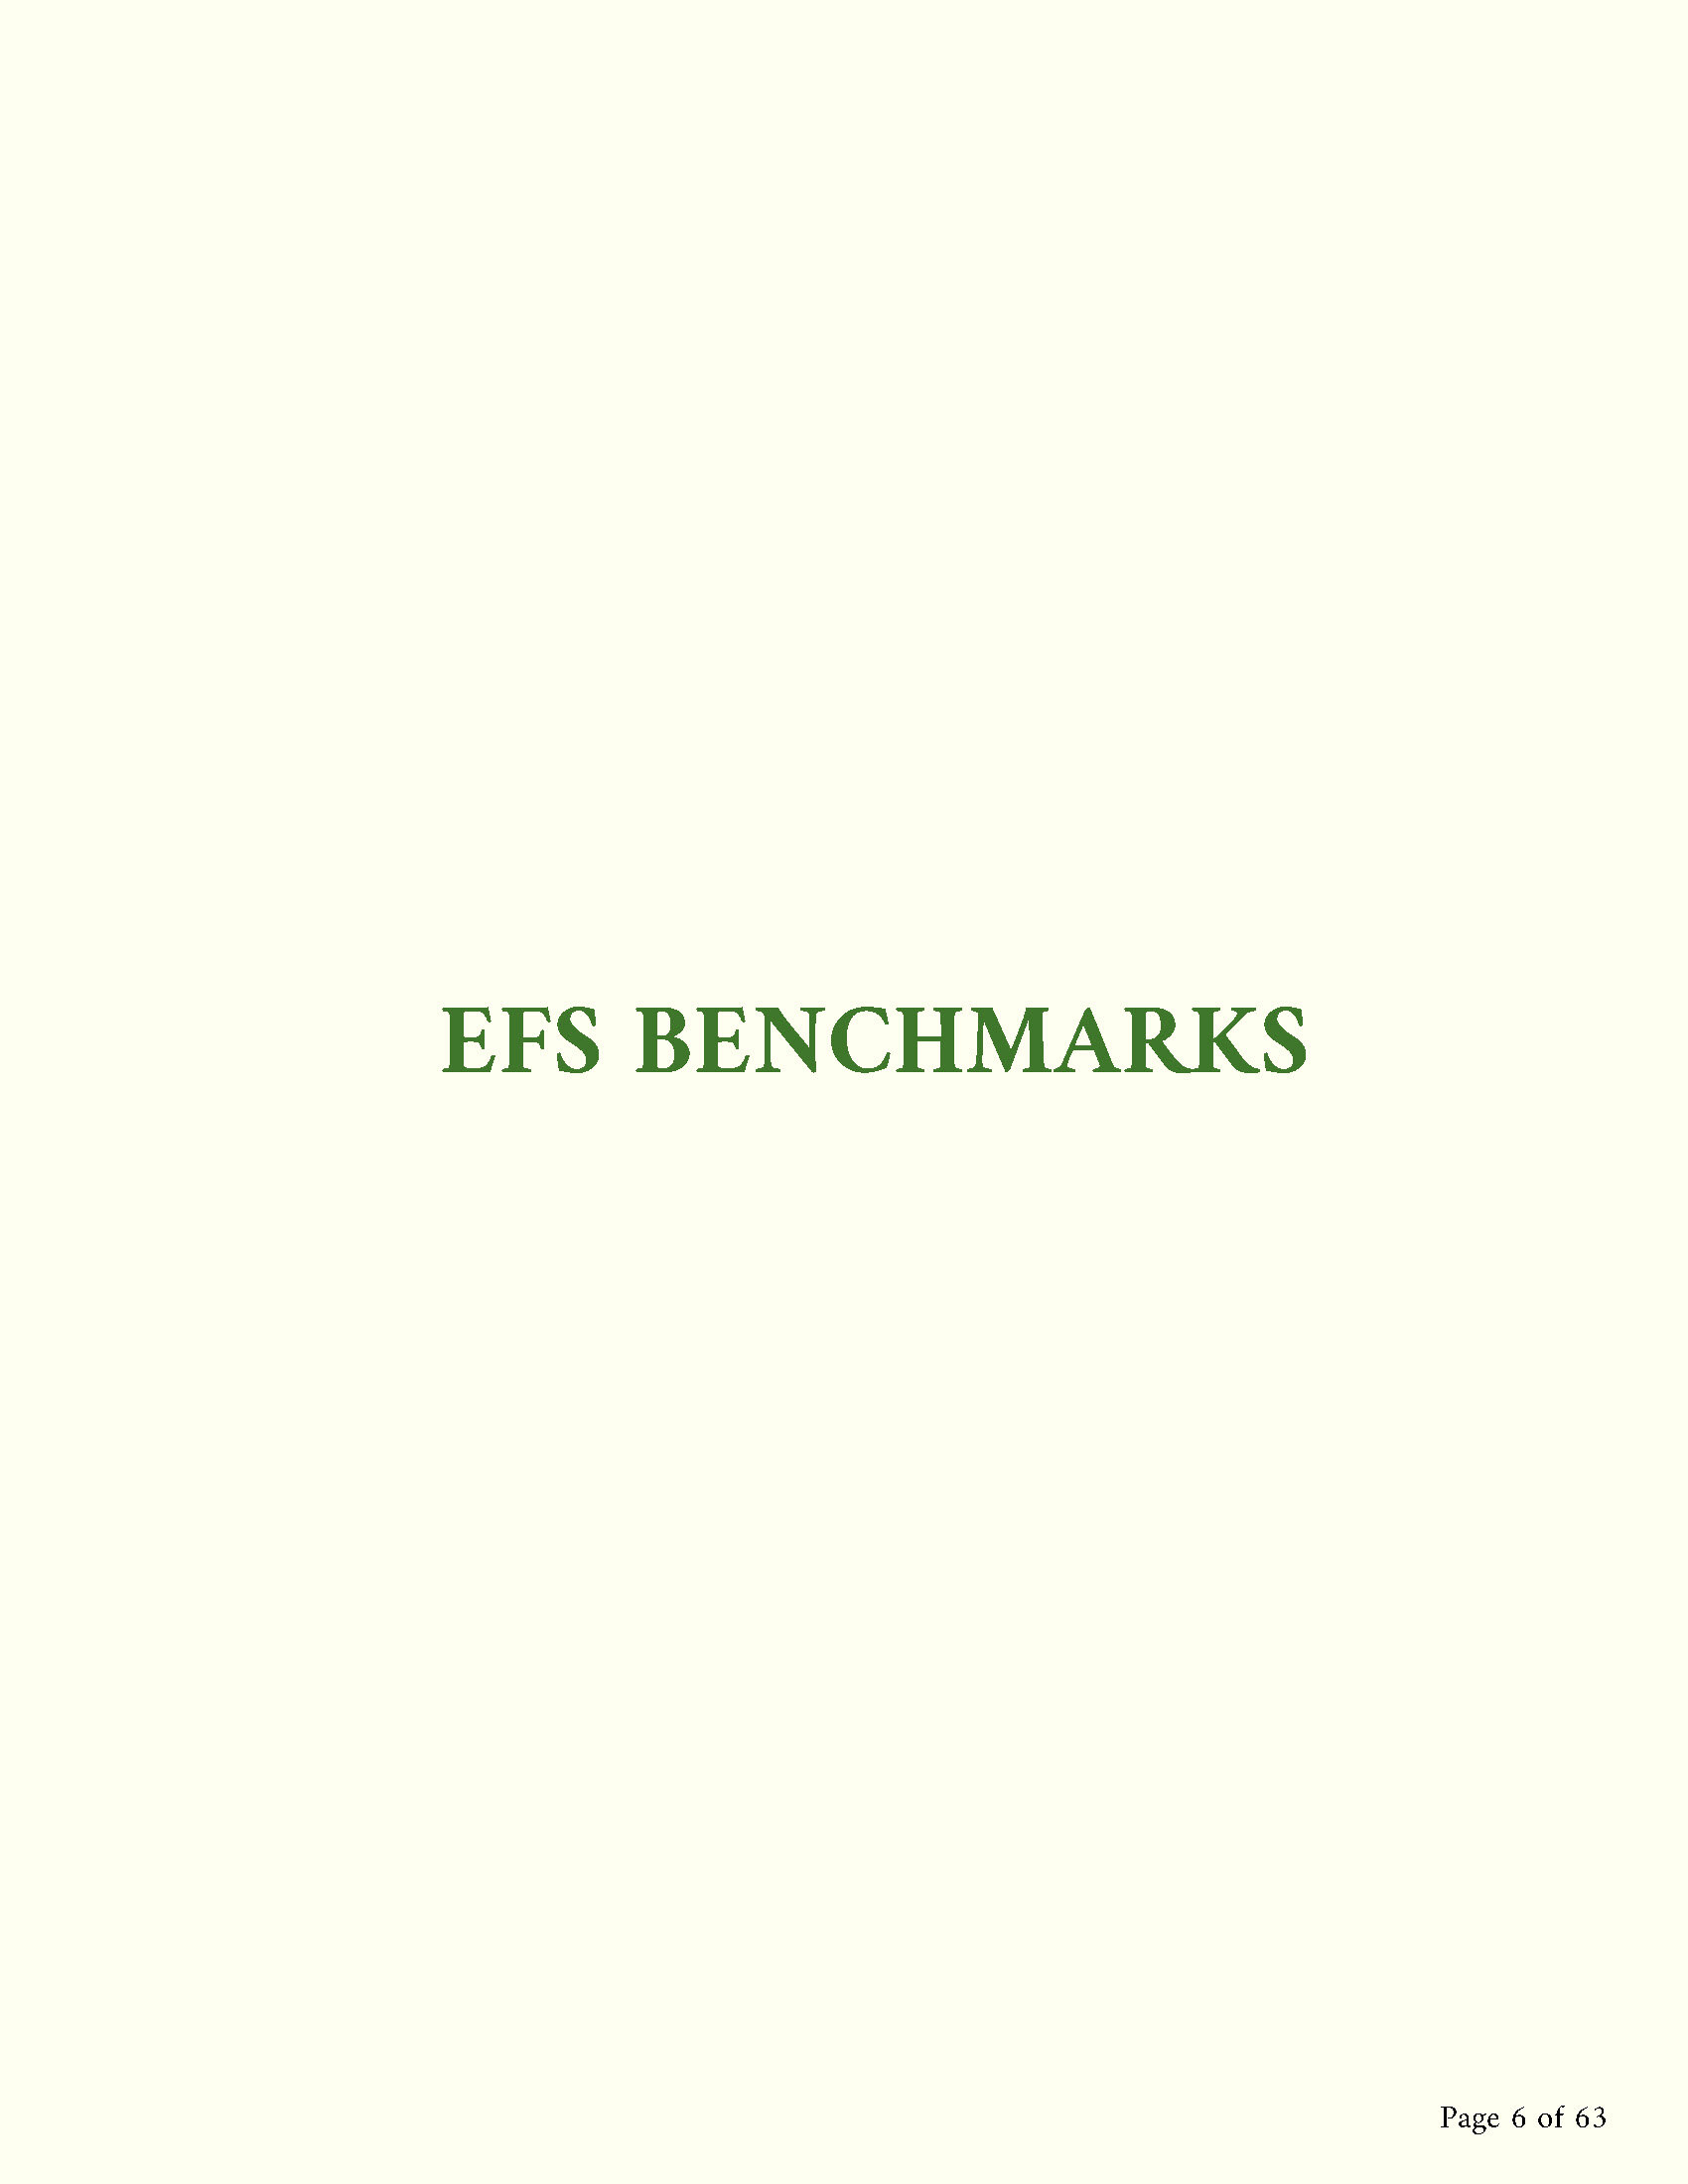 Download The EfS Benchmarks_Page_13.jpg